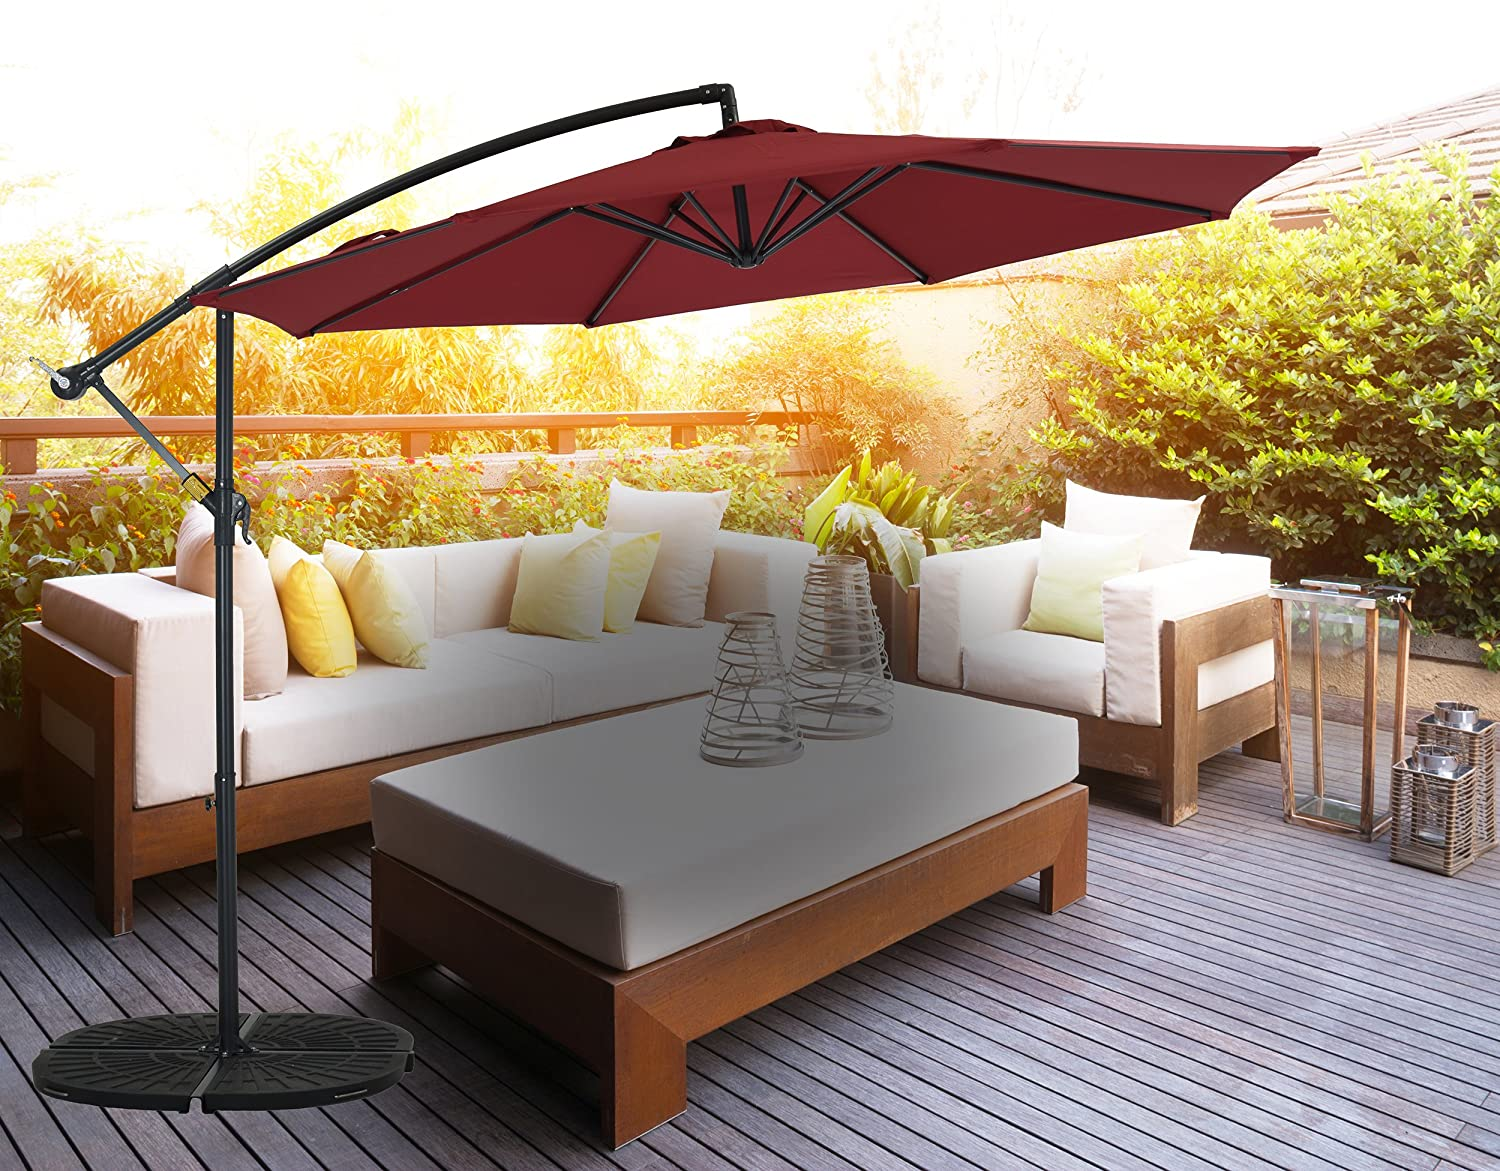 The Best Patio Umbrellas For Your Garden Or Backyard: Reviews & Buying Guide 12